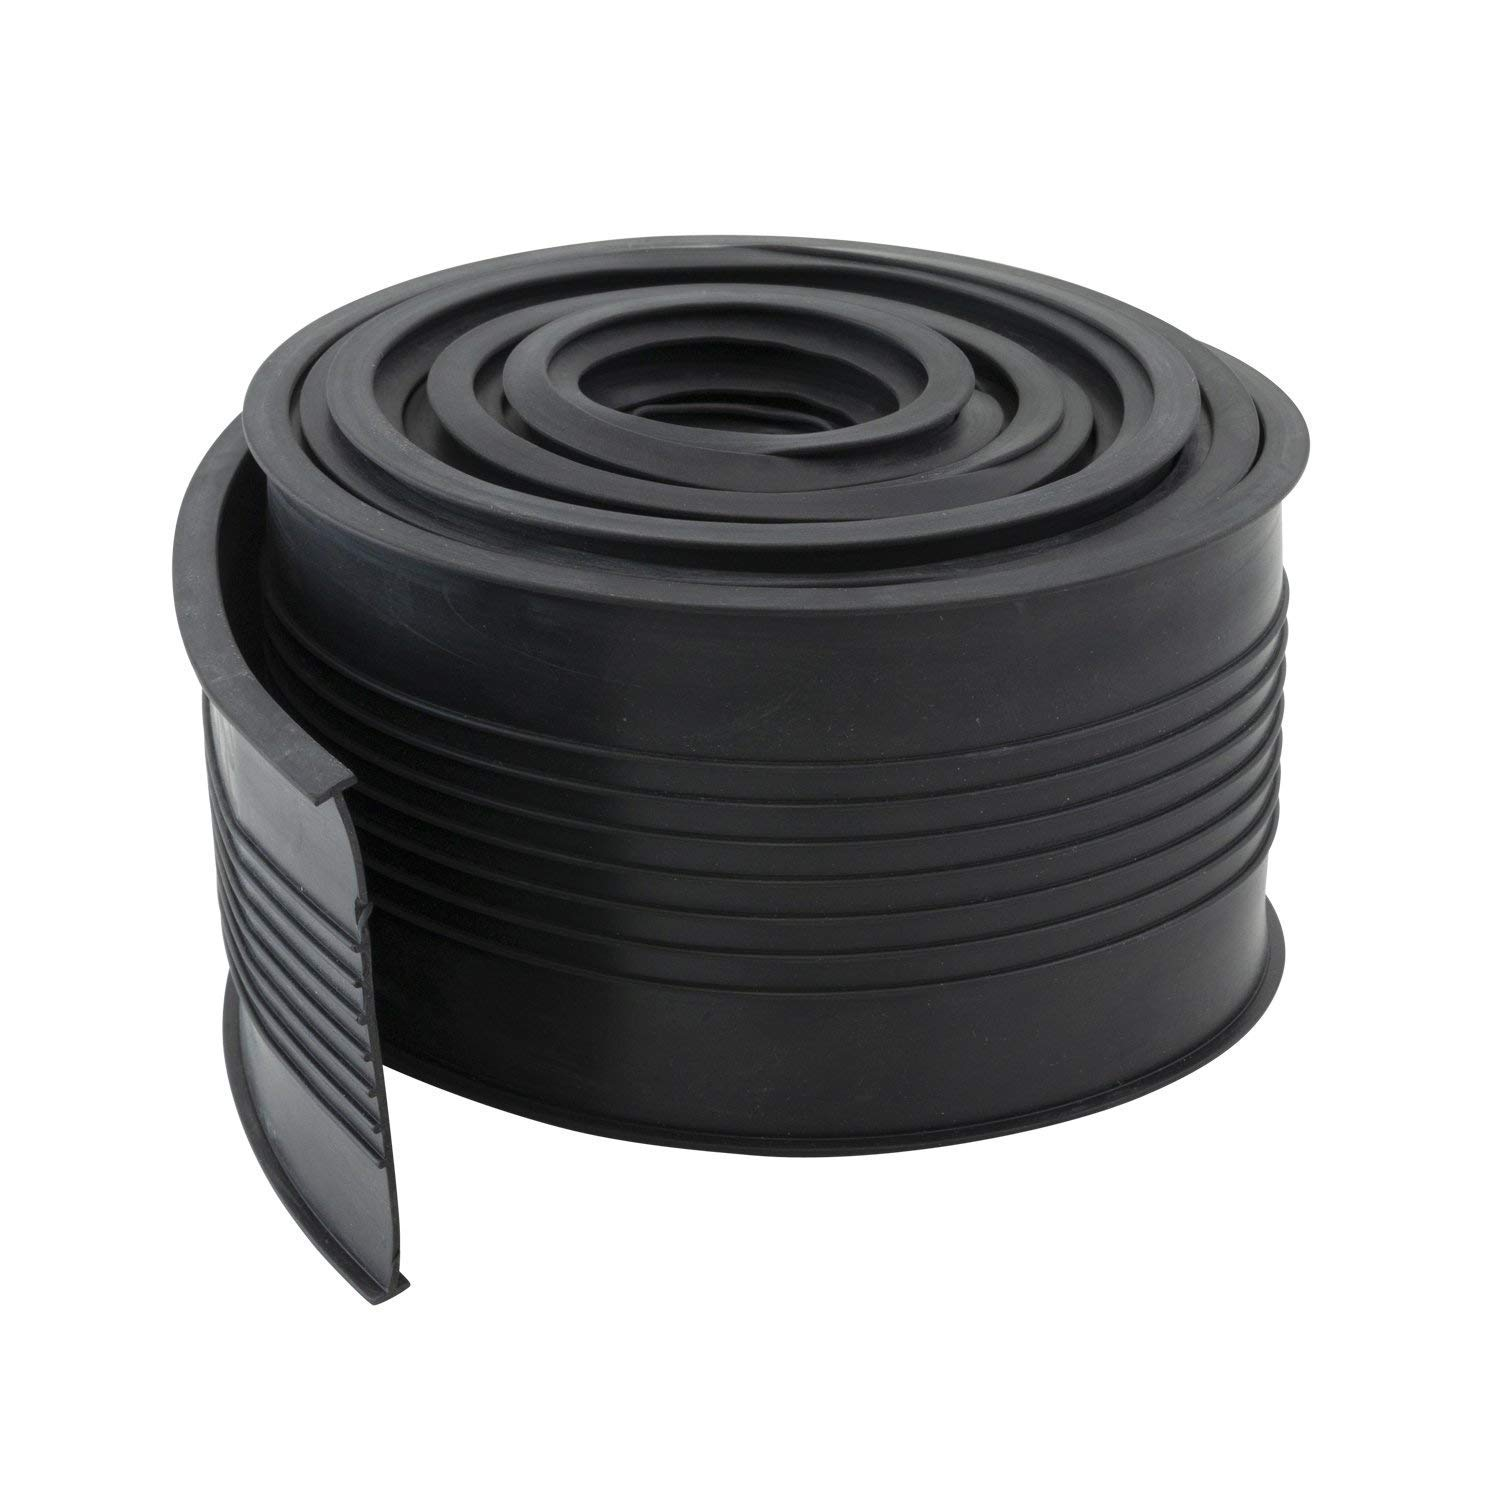 Water Barrier Seals 5//16 T Ends 3 3//4 W x 20 ft L GDS-BK-20FT Black Bottom Replacement Rubber 5//16 T Ends 3 3//4 W x 20 ft L Houseables Garage Door Seal Weather Stripping Gasket Guard Threshold Sealer Weatherstrip Insulation Trim